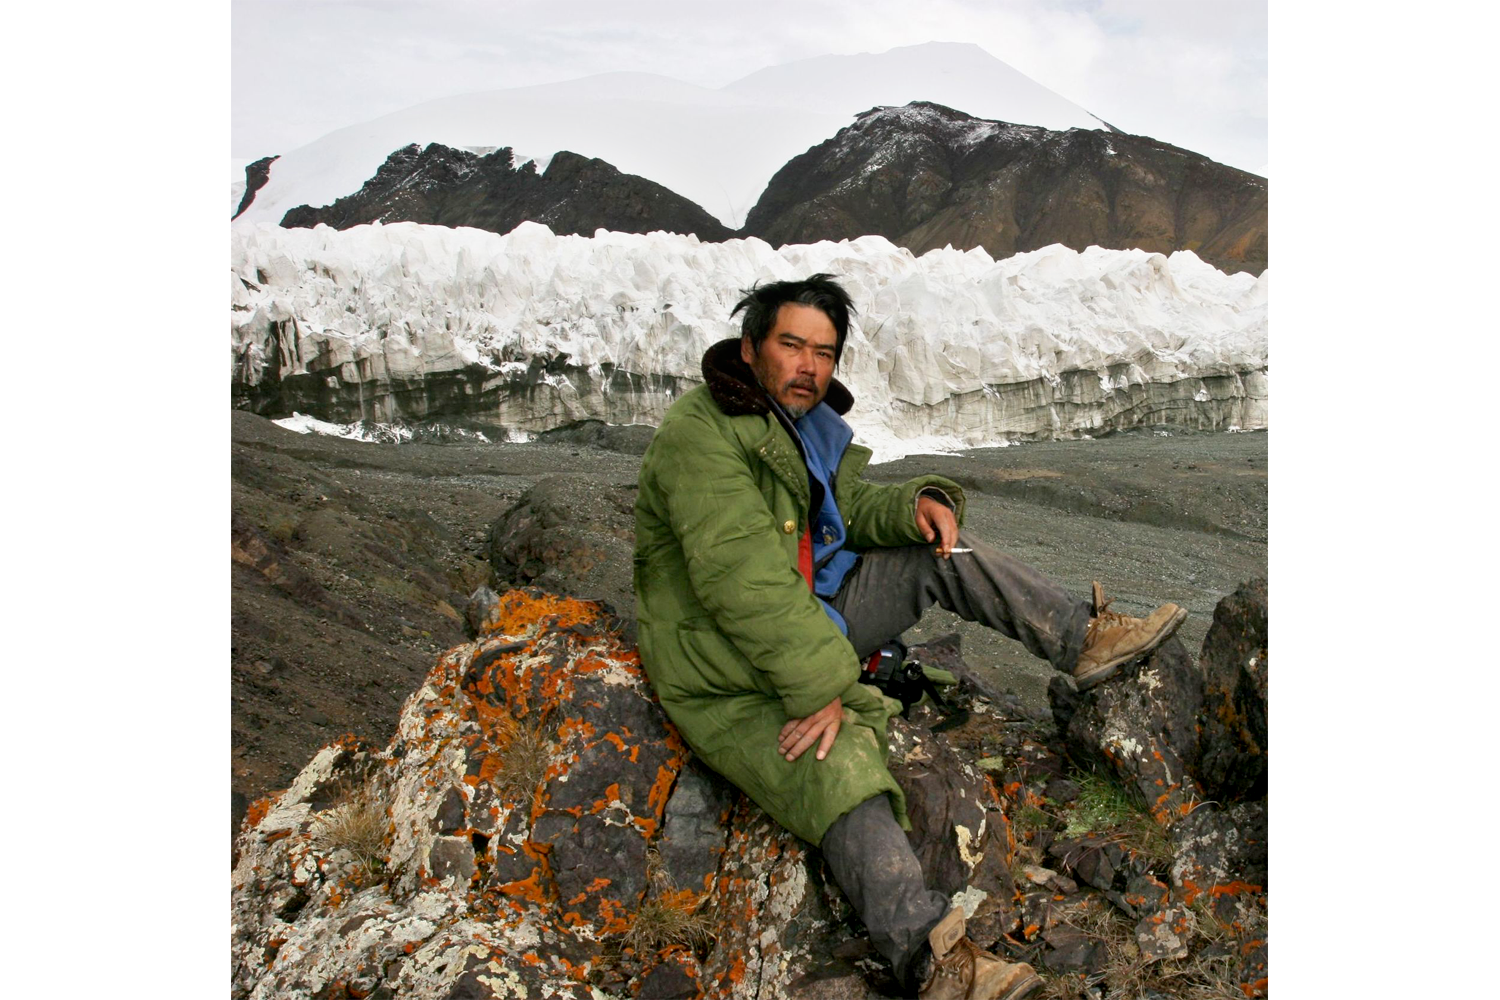 Geologist and glaciologist Yang Yong, by the glaciers that feed the Yangtze on the Qinghai Tibet plateau. Photo by Yang Yong.